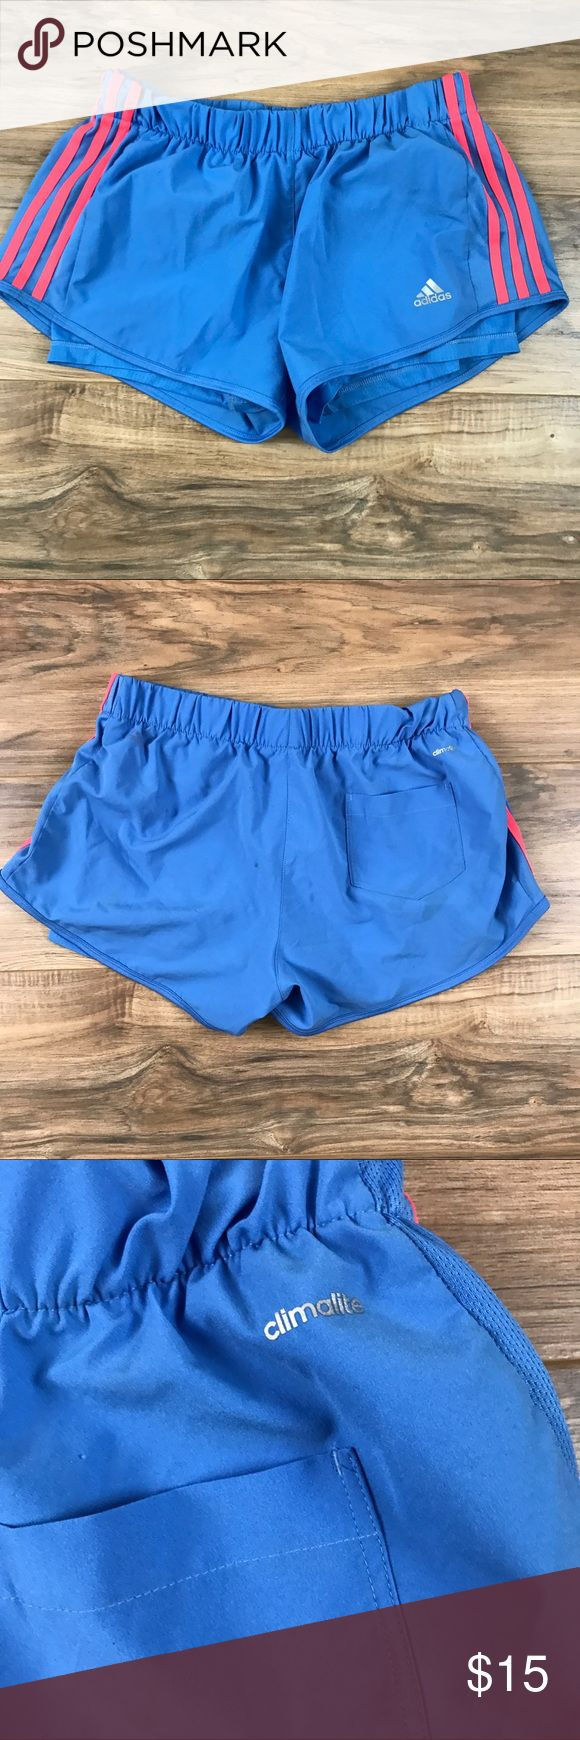 Adidas Women's track Shorts Great gym attire! Women's climalite adidas. Nice lightweight for the gym and outdoors! Adidas Shorts